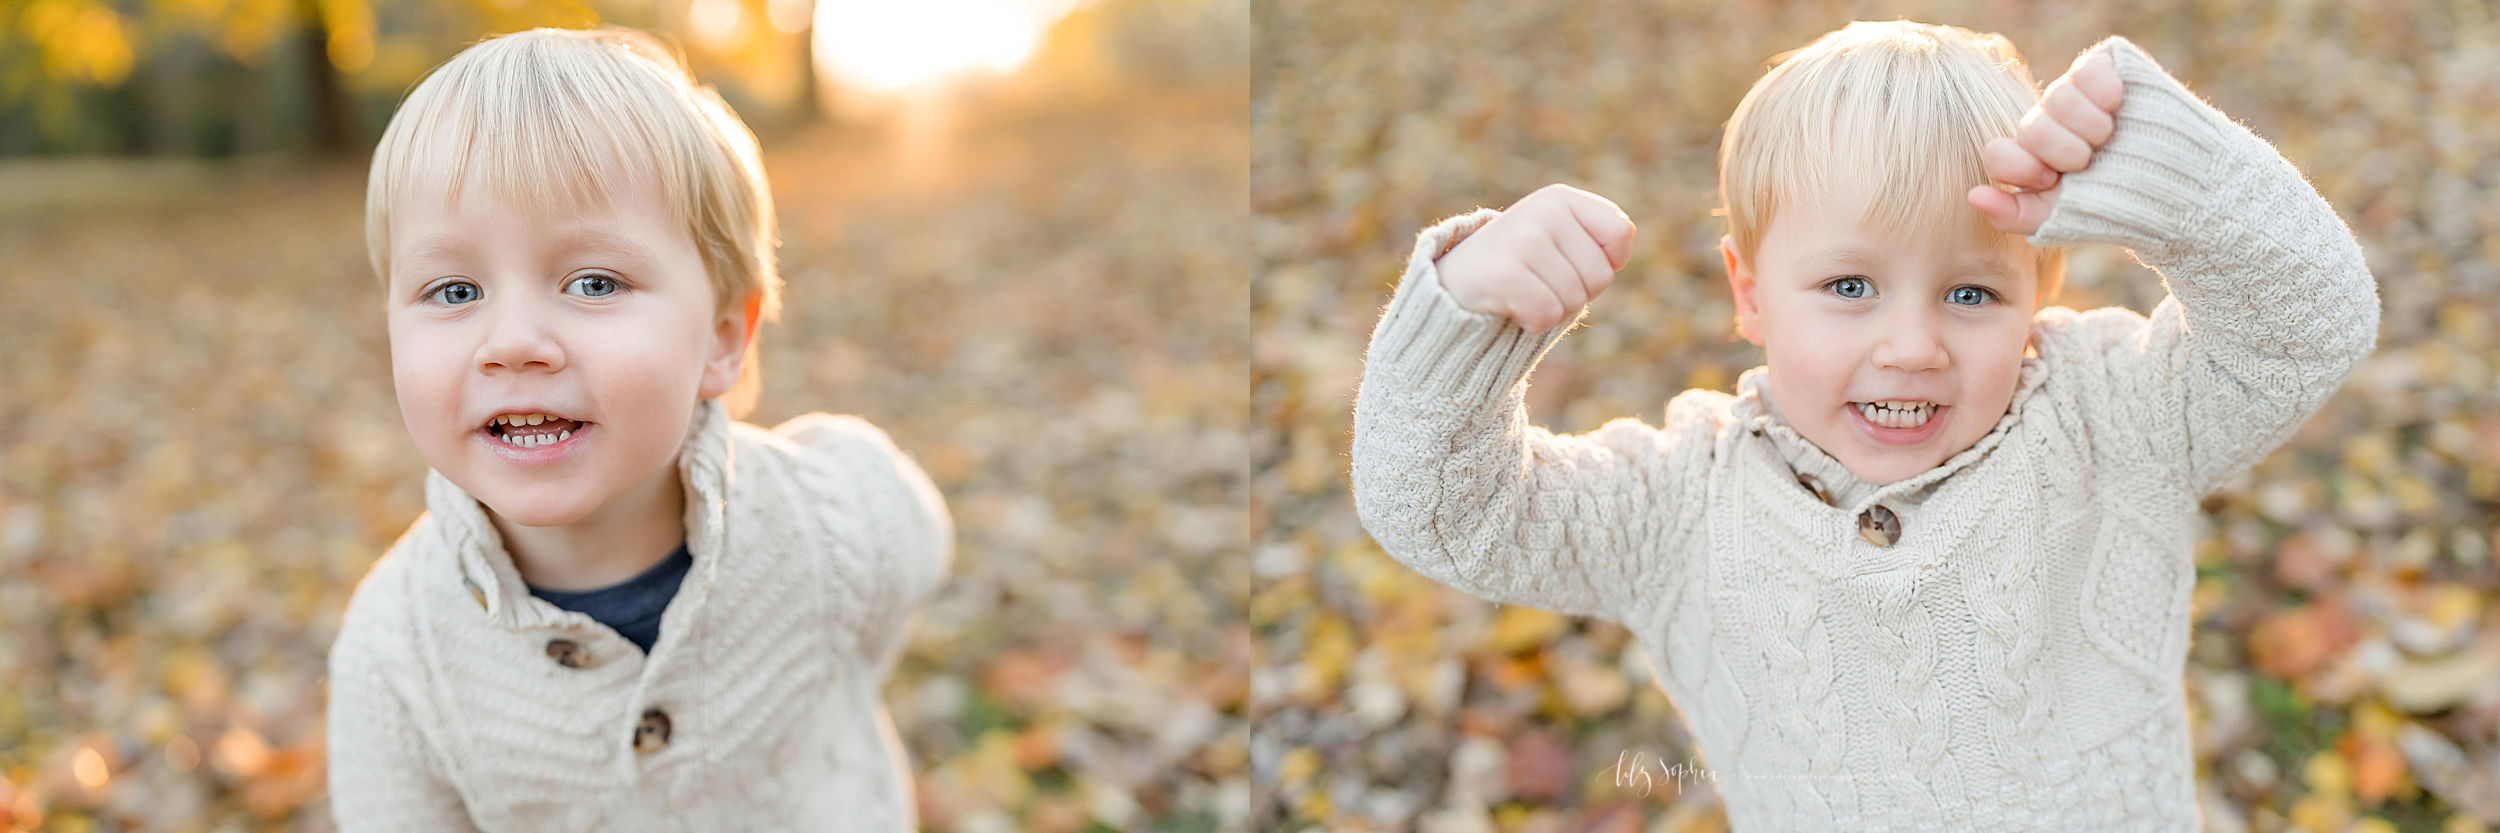 atlanta-midtown-brookhaven-decatur-lily-sophia-photography-photographer-portraits-grant-park-family-sunset-fall-outdoor-session-brothers-toddler-baby_0150.jpg